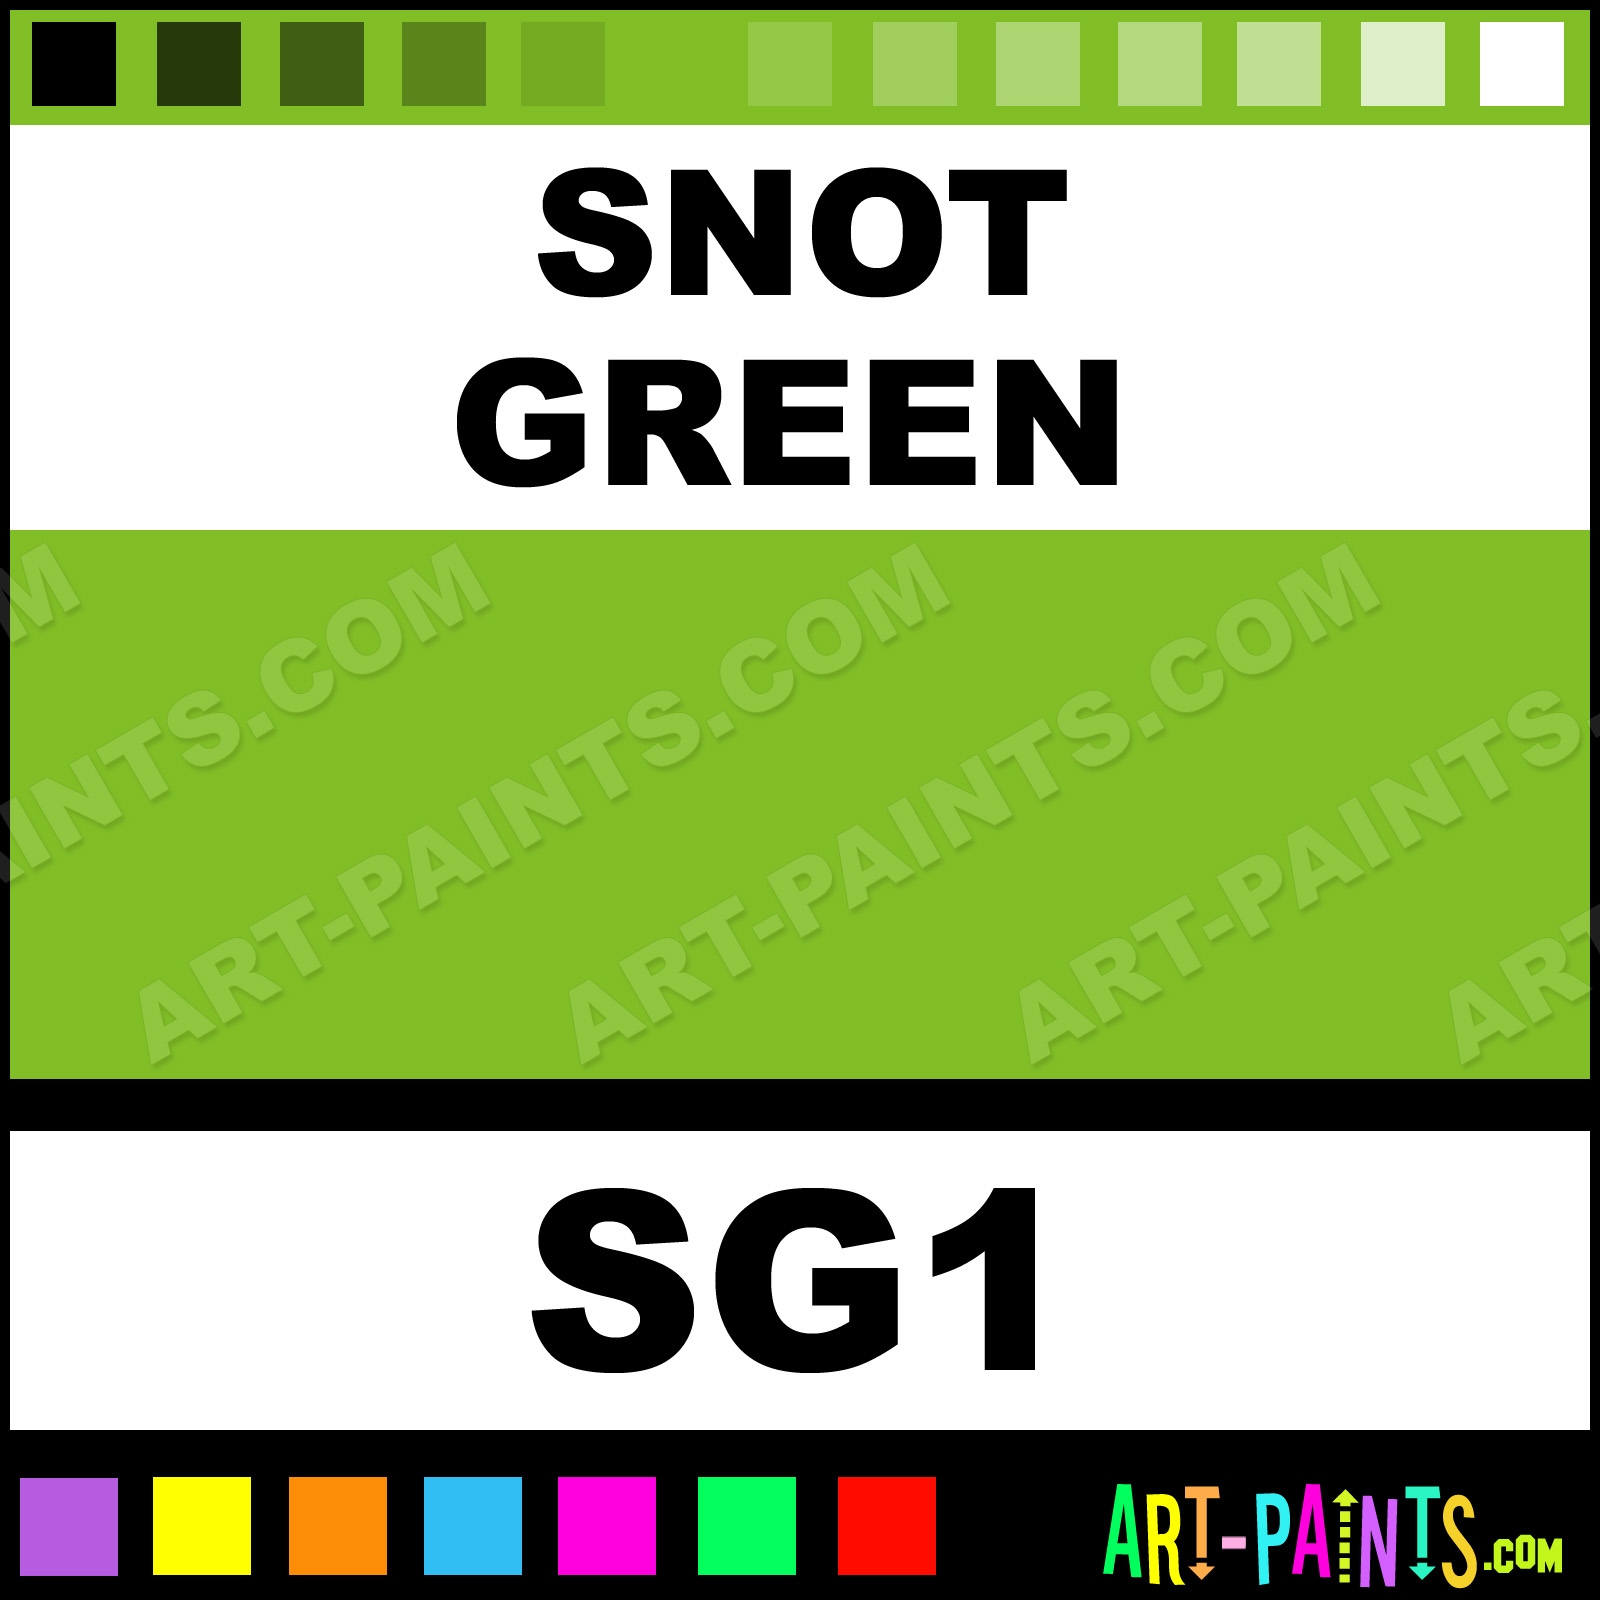 Snot green colorworks tattoo ink paints sg1 snot green paint snot green colorworks tattoo ink paints sg1 snot green paint snot green color millenium colorworks paint 81be25 art paints nvjuhfo Image collections